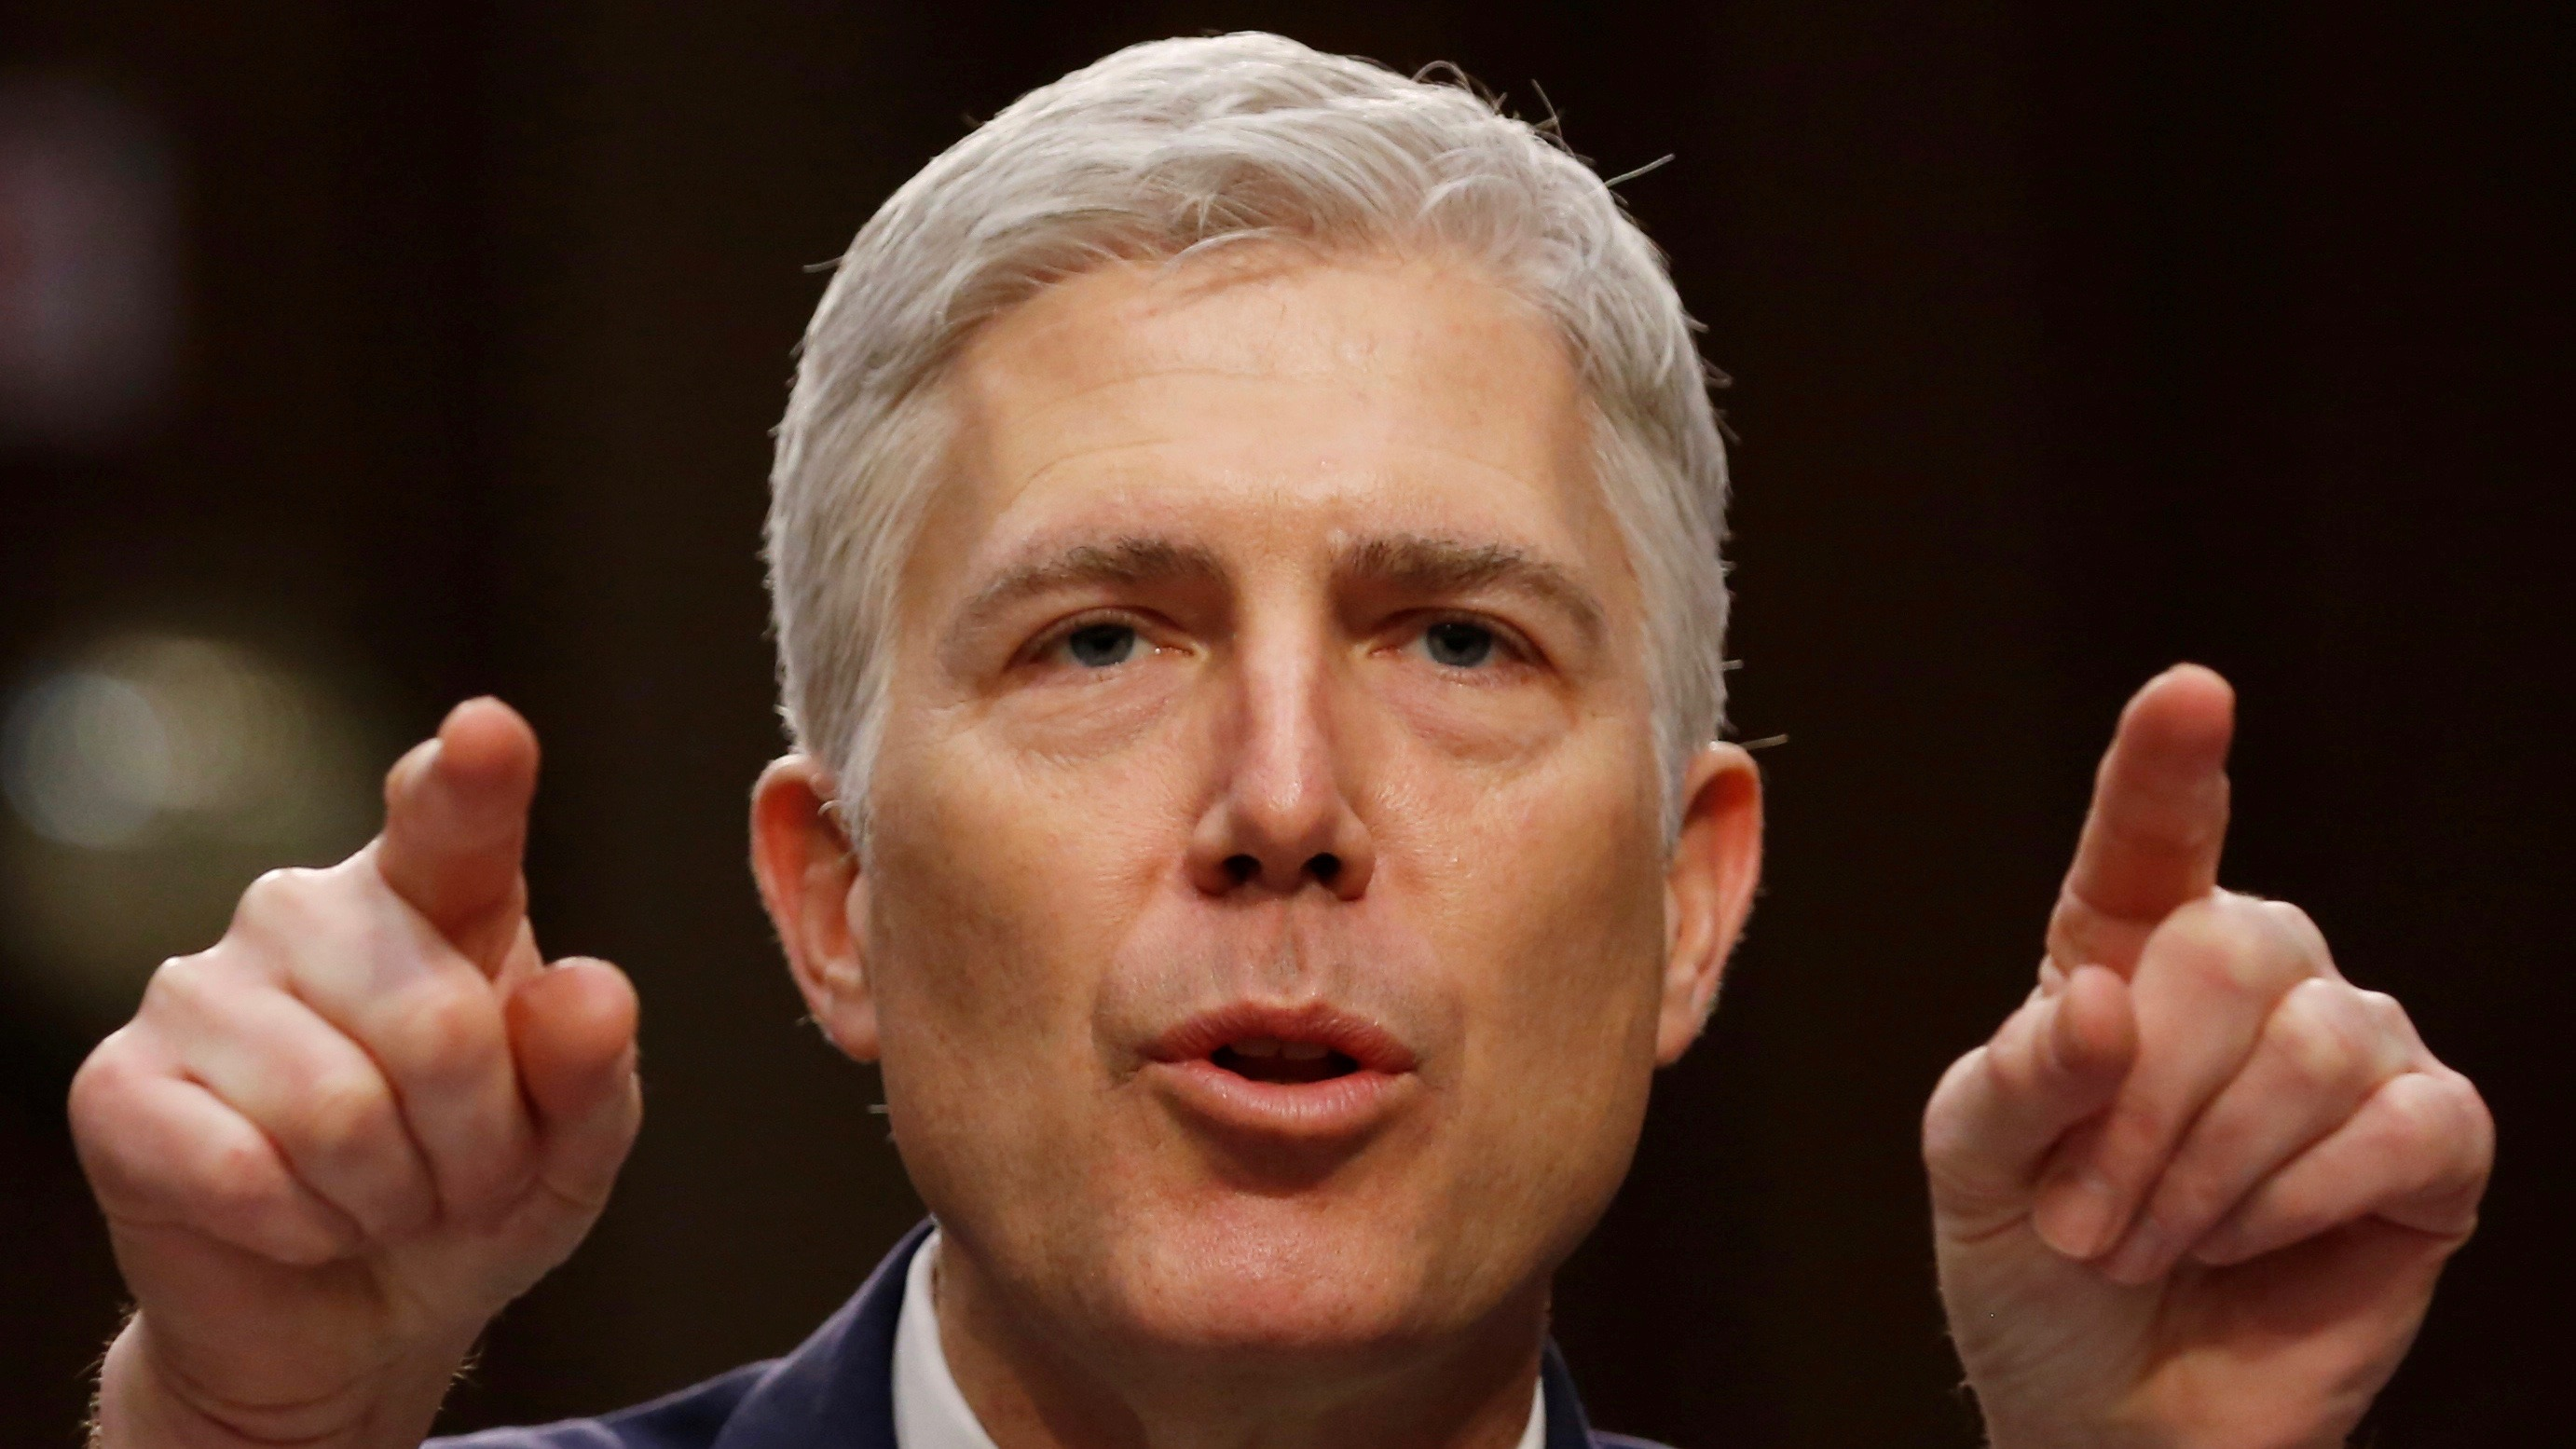 Supreme Court Justice to be Neil Gorsuch.